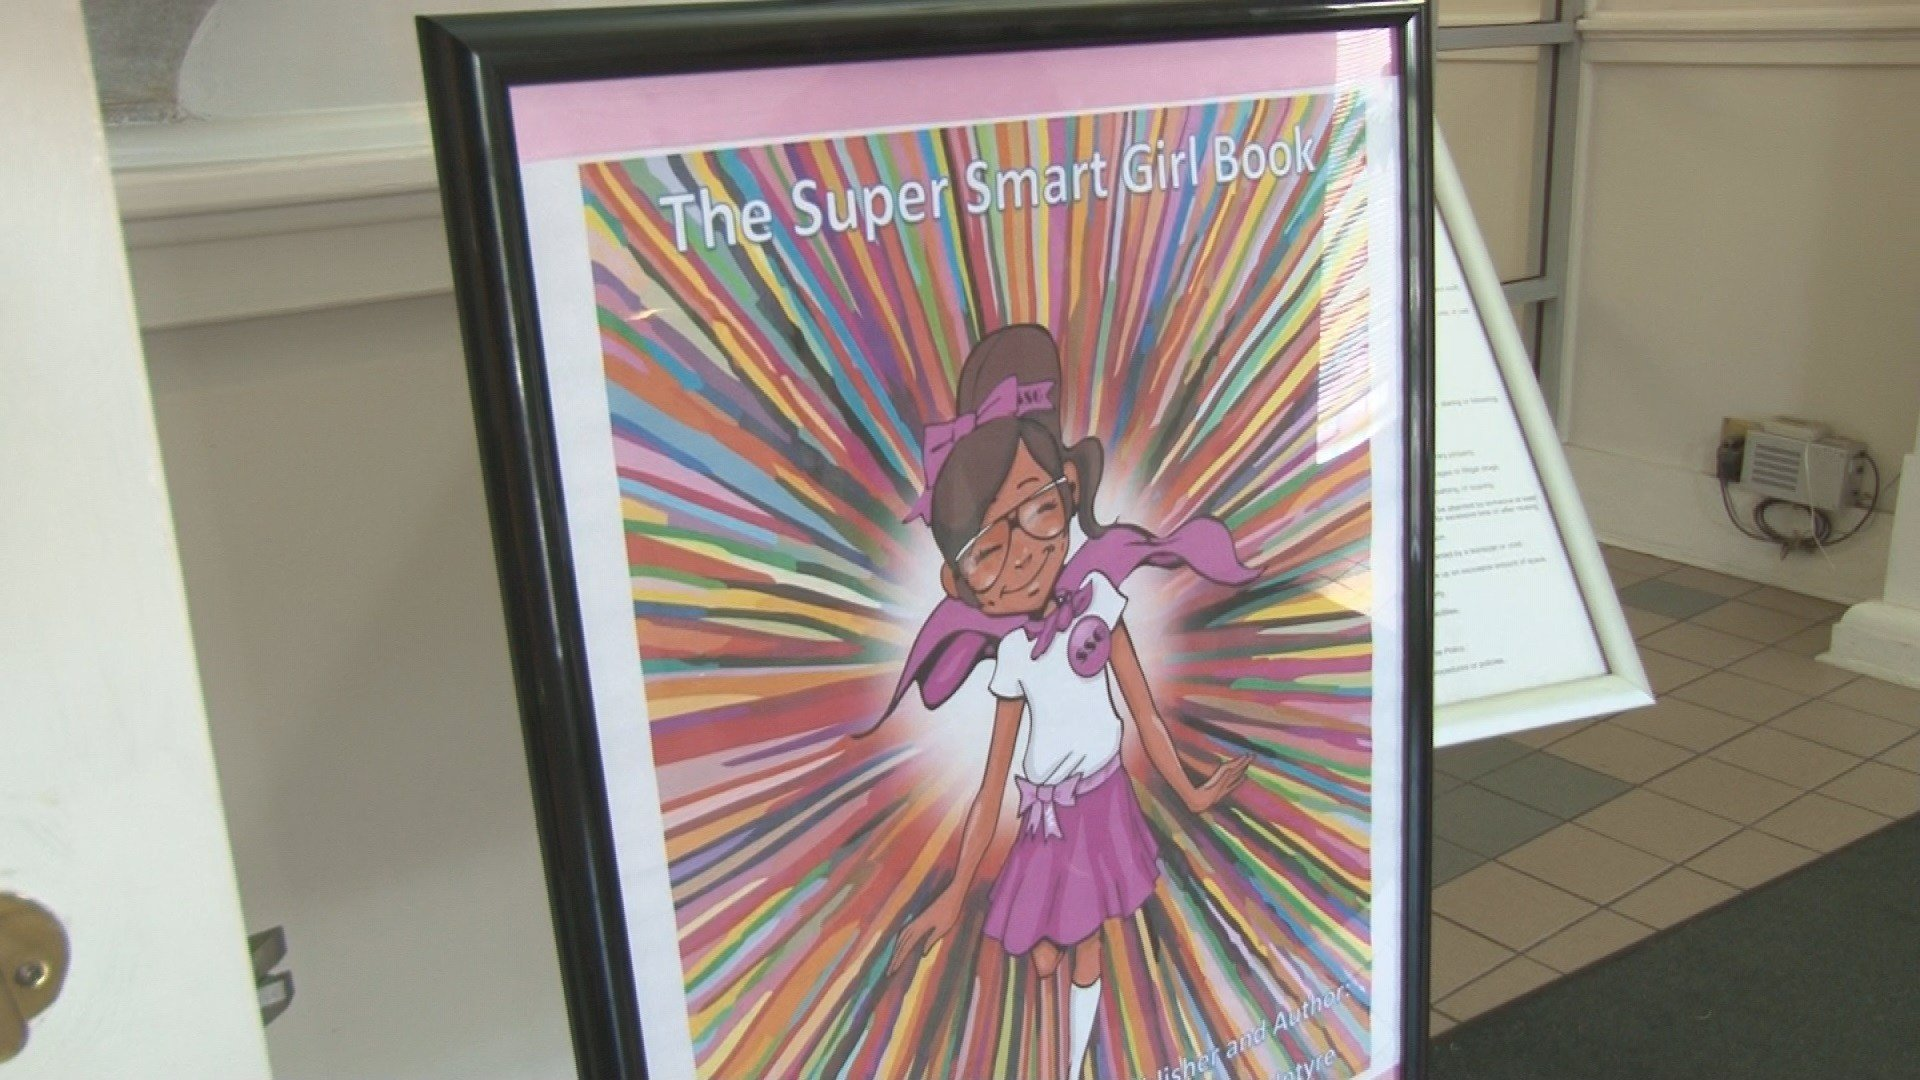 Four alarm fire at new york city high rise injures 24 people two critically fox news - Author Latina Mcintyre Has A New Book Called Super Smart Girl An Inspirational Book For Children She Held A Book Signing Today At The Aiken County Public